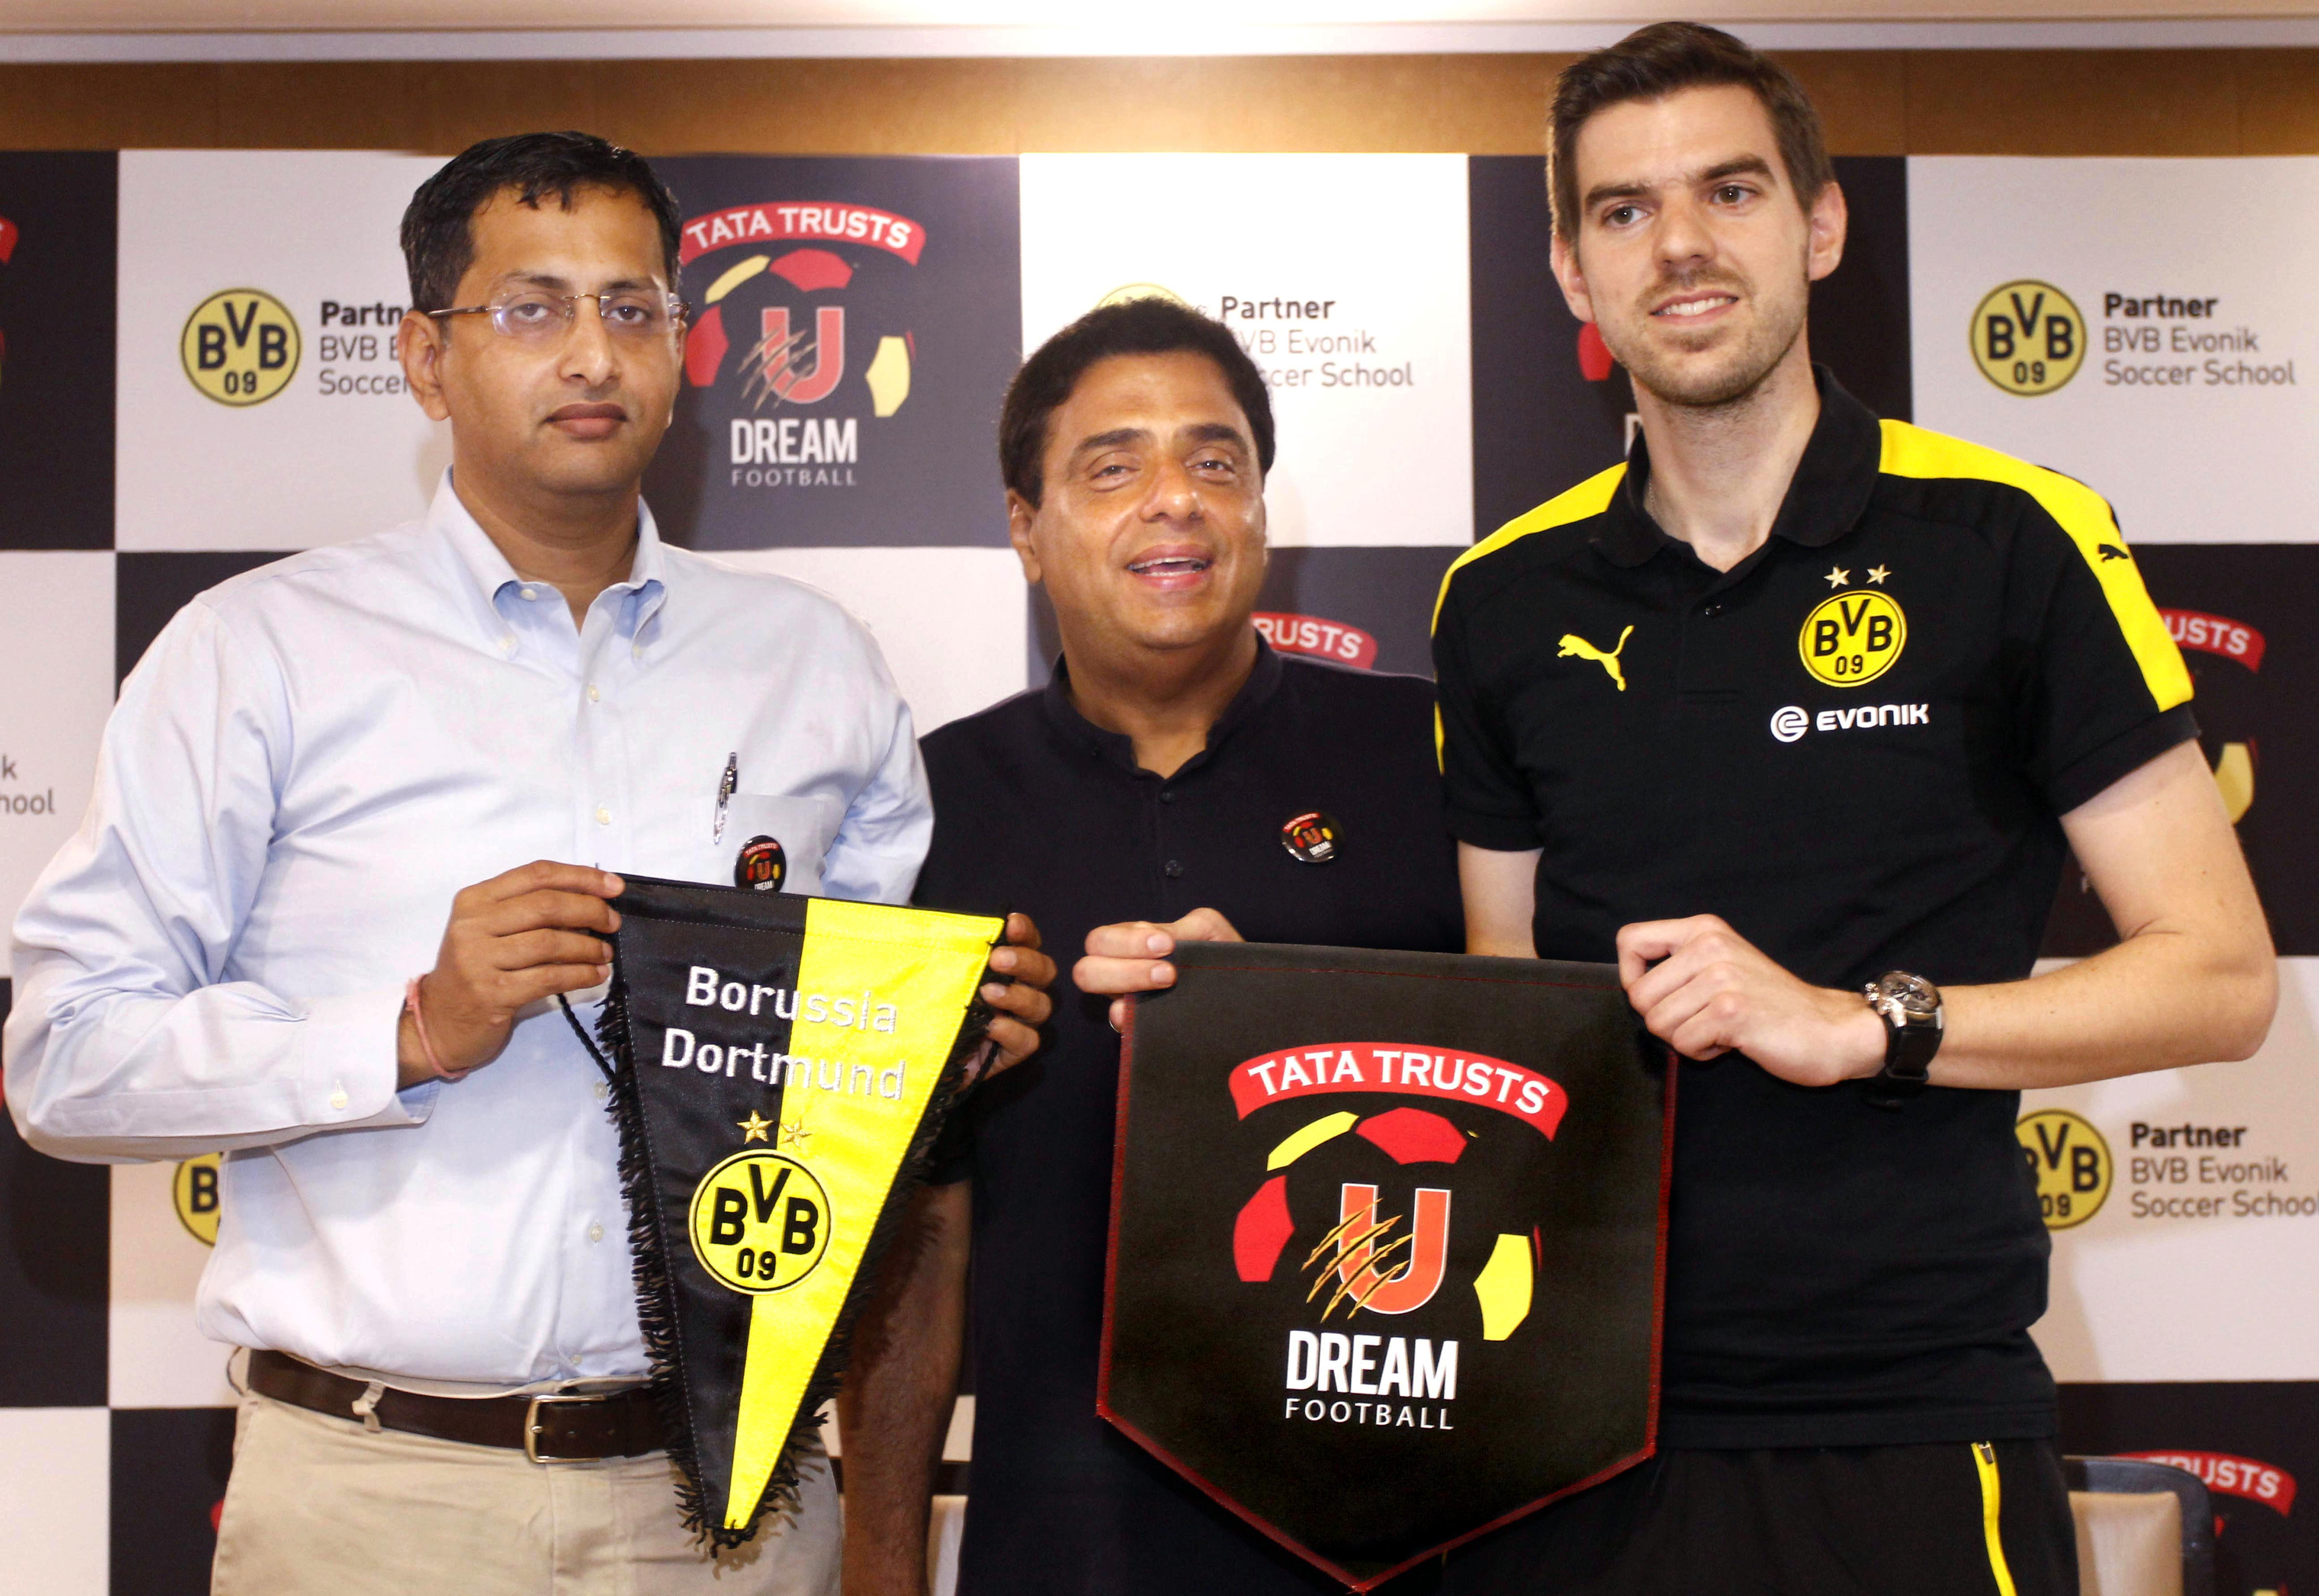 Tata Trusts, U Dream Football, Partnership, Borussia Dortmund